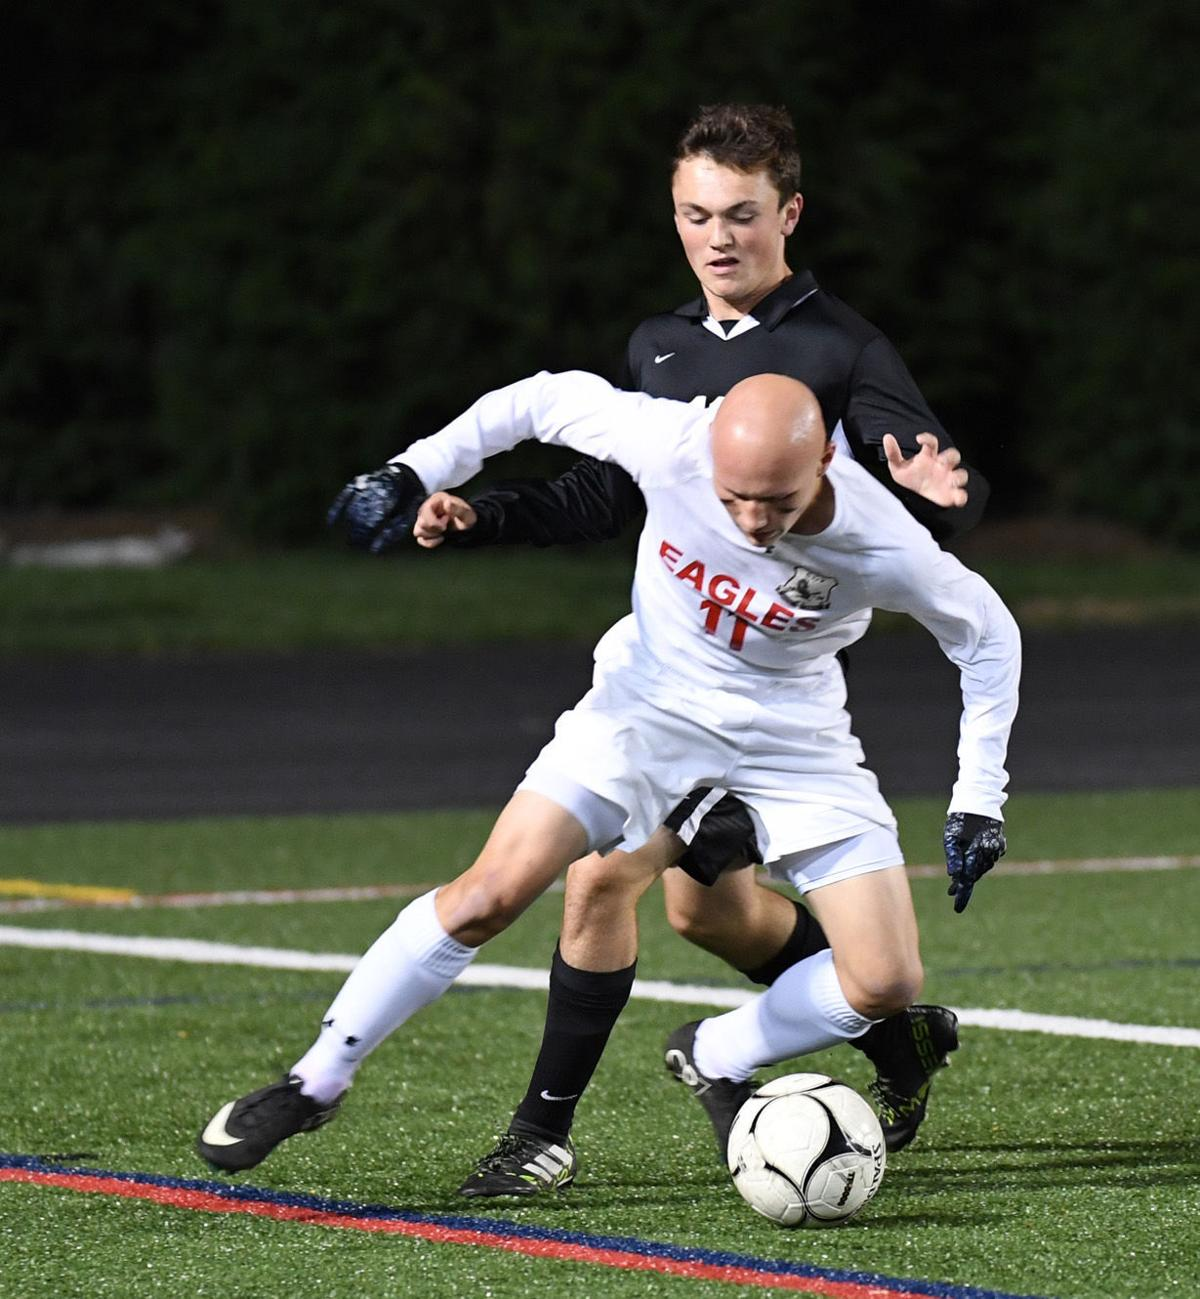 District 3 Boys Soccer Championship: Cumberland Valley vs. Hempfield (copy)